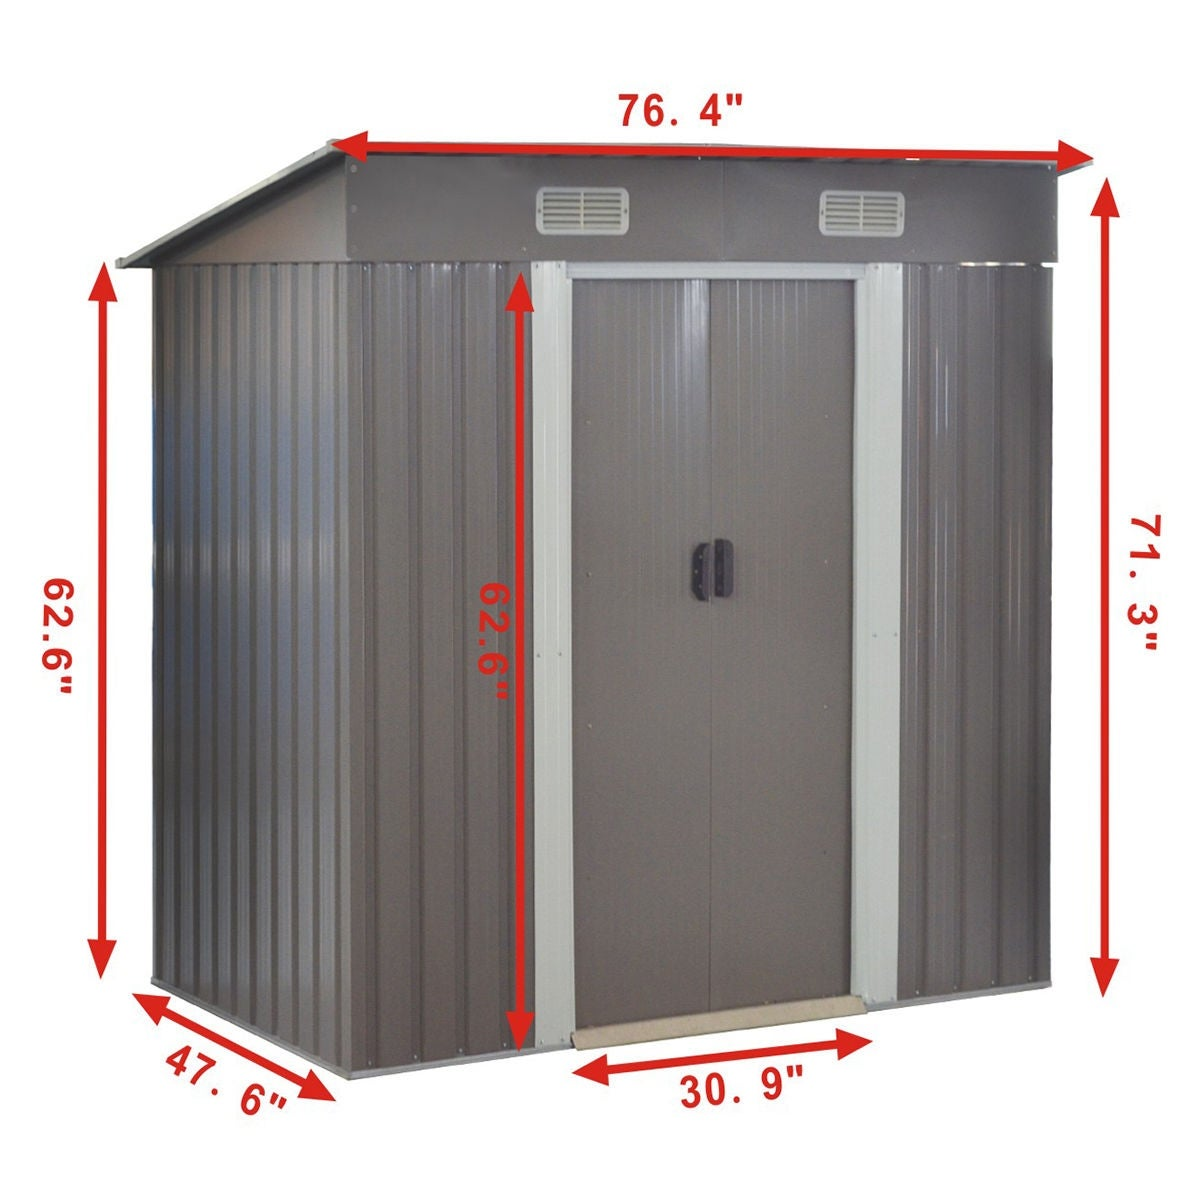 Costway 4x6ft Outdoor Garden Storage Shed Tool House Sliding Door Galvanized Steel Gray Free Shipping Today 16419830